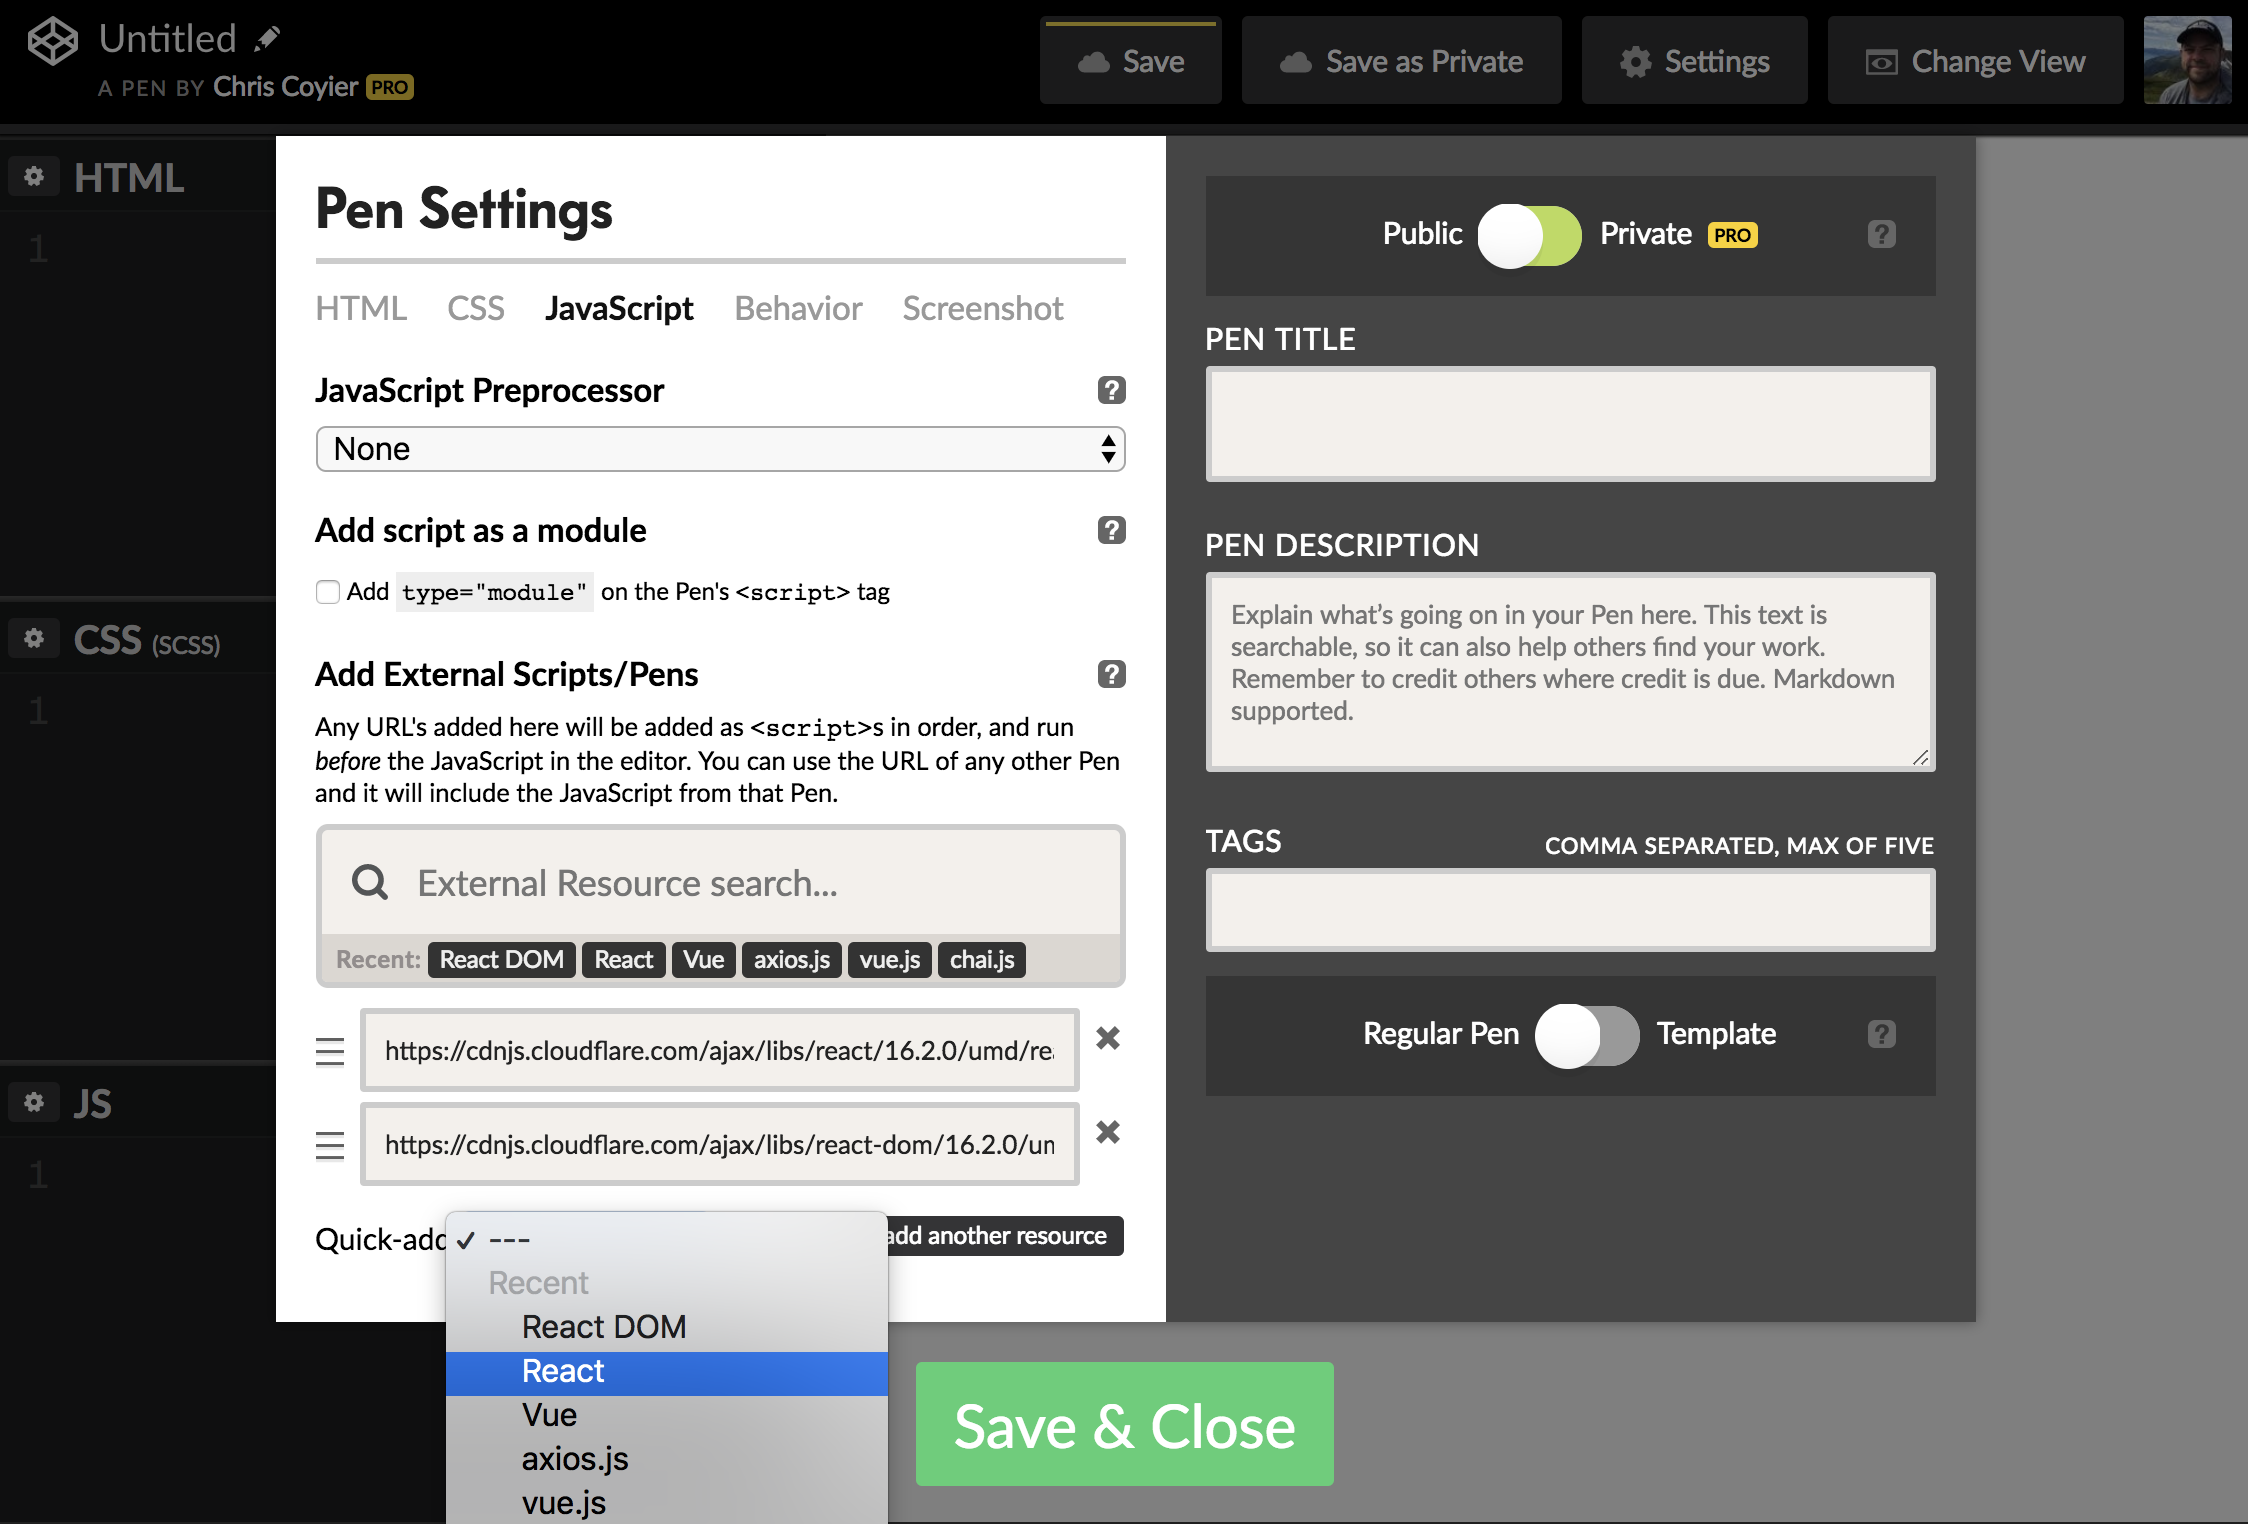 A screenshot of the CodePen interface with the JavaScript settings open. The settings are in a split pane where the settings are on the left in a white box and advanced settings are on the right in a dark gray box.